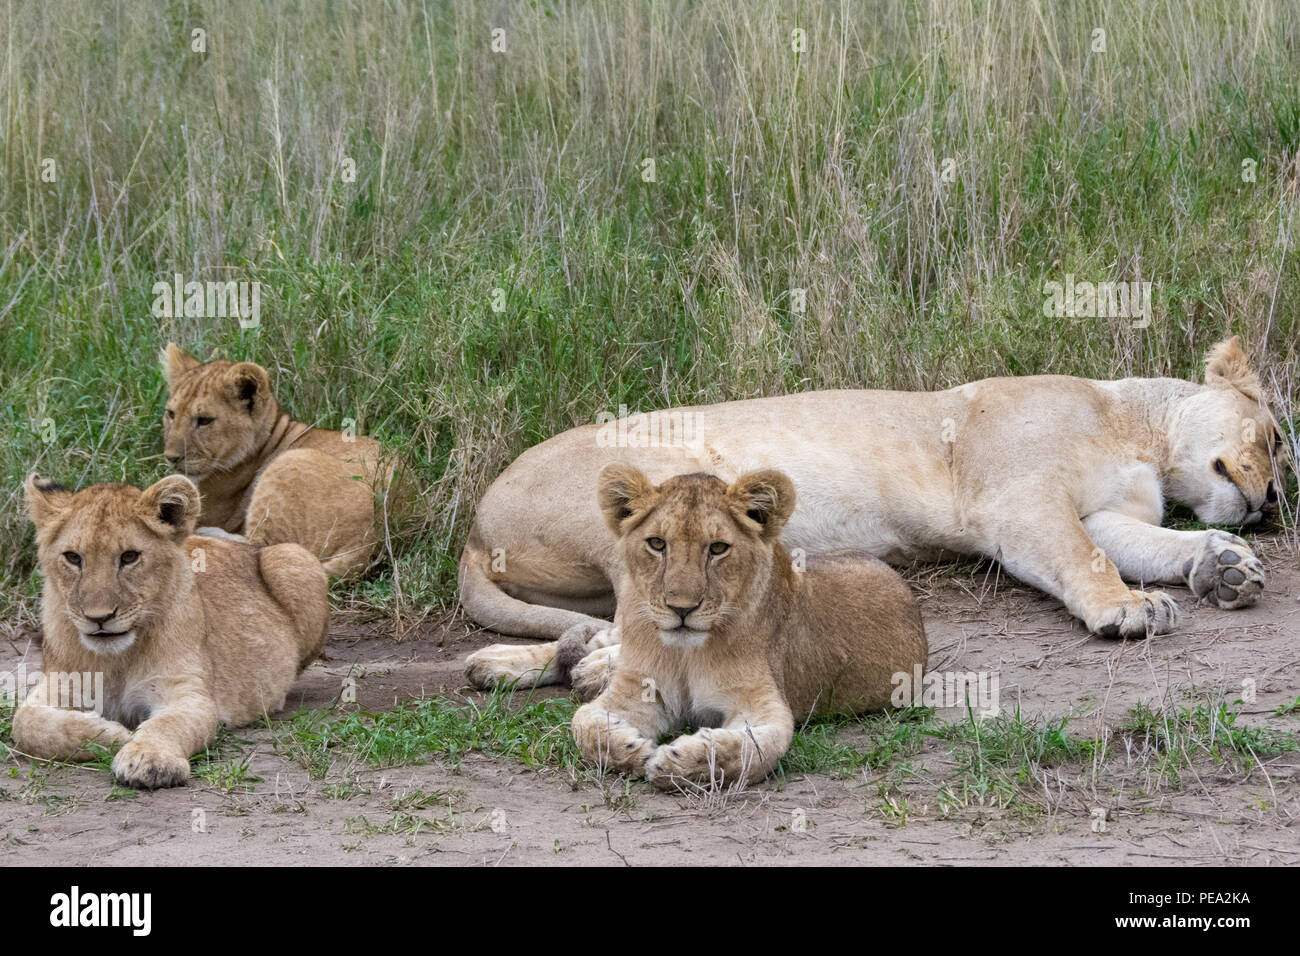 Two young cubs laying next to their mother in Serengeti NP, Tanzania Stock Photo